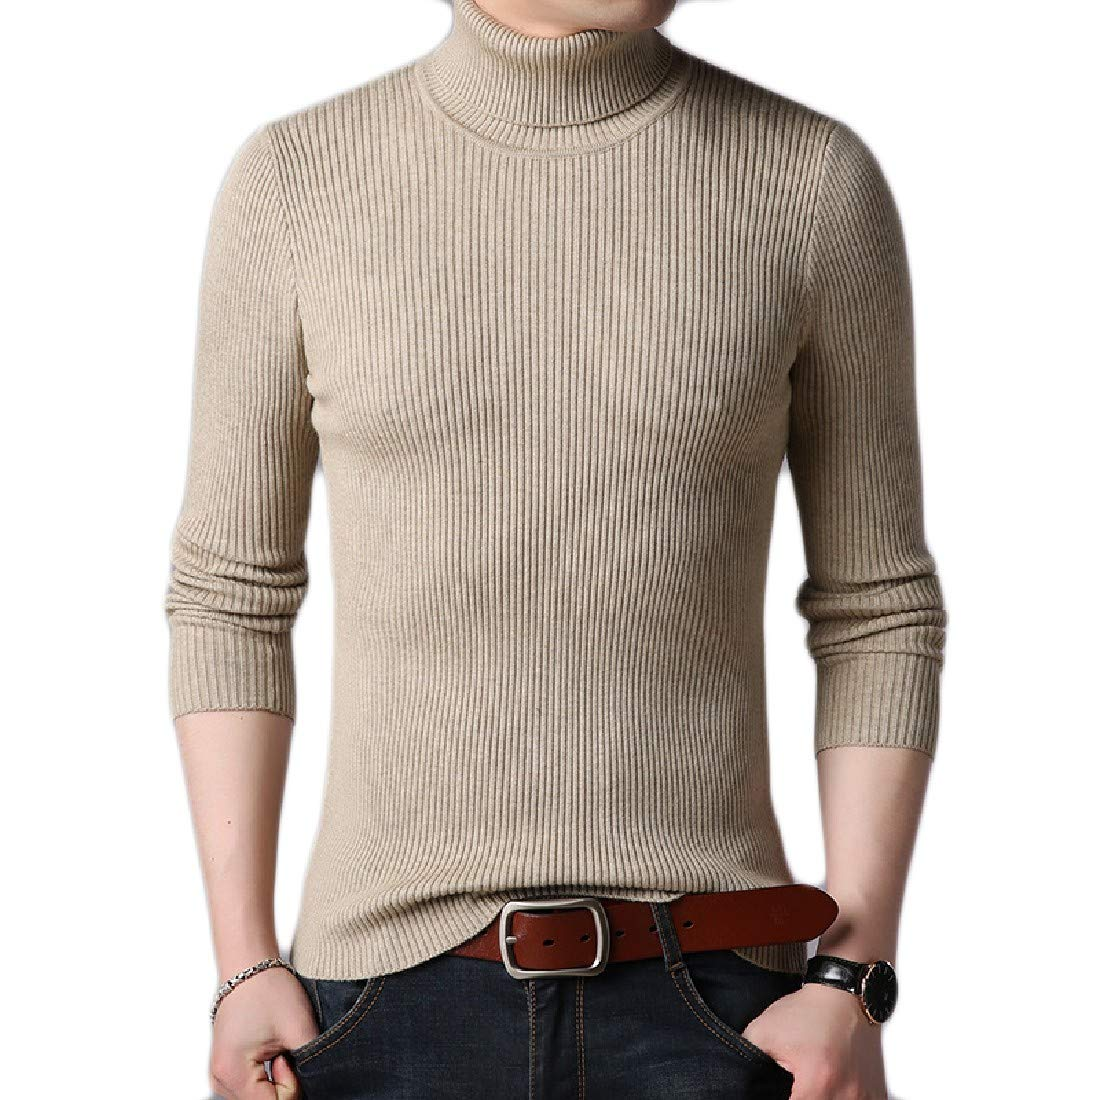 VITryst-Men Thick Knitwear Warm Solid Top Pullover Sweater